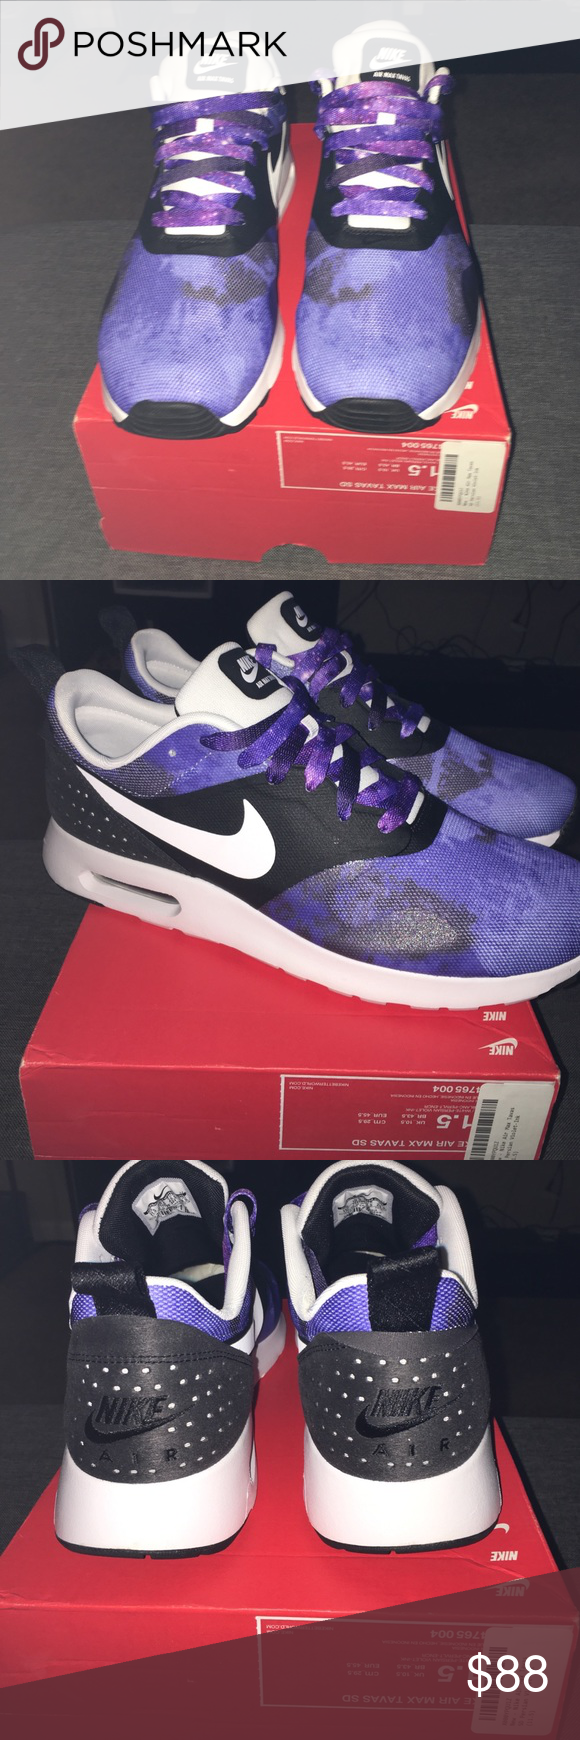 4c9b4e5f37d4 ... netherlands new nike air max tavas white violet w galaxy laces brand  new 76c65 89080